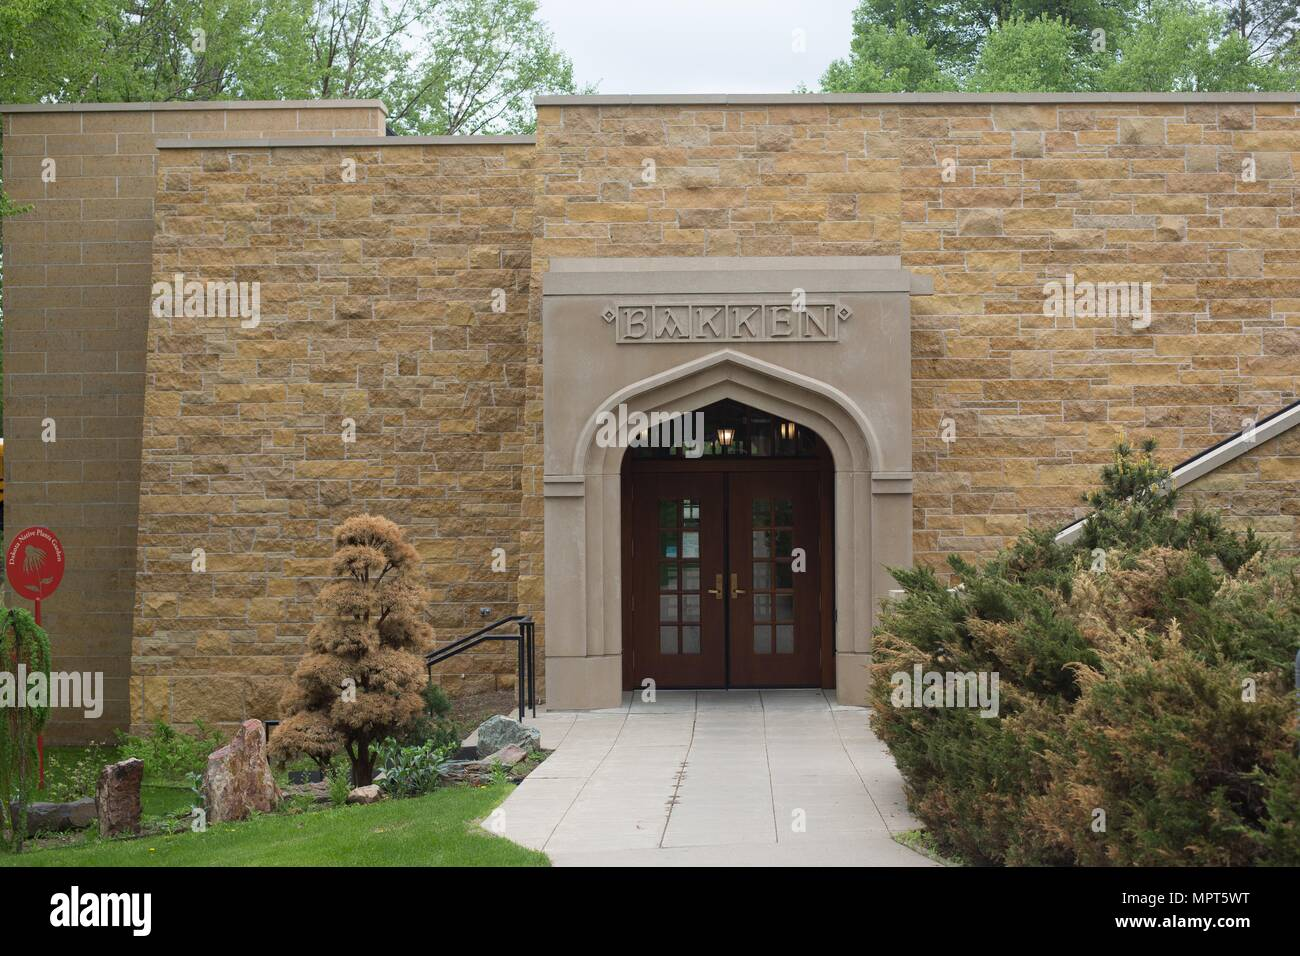 The entrance to the Bakken Museum in Minneapolis, Minnesota, USA. Stock Photo